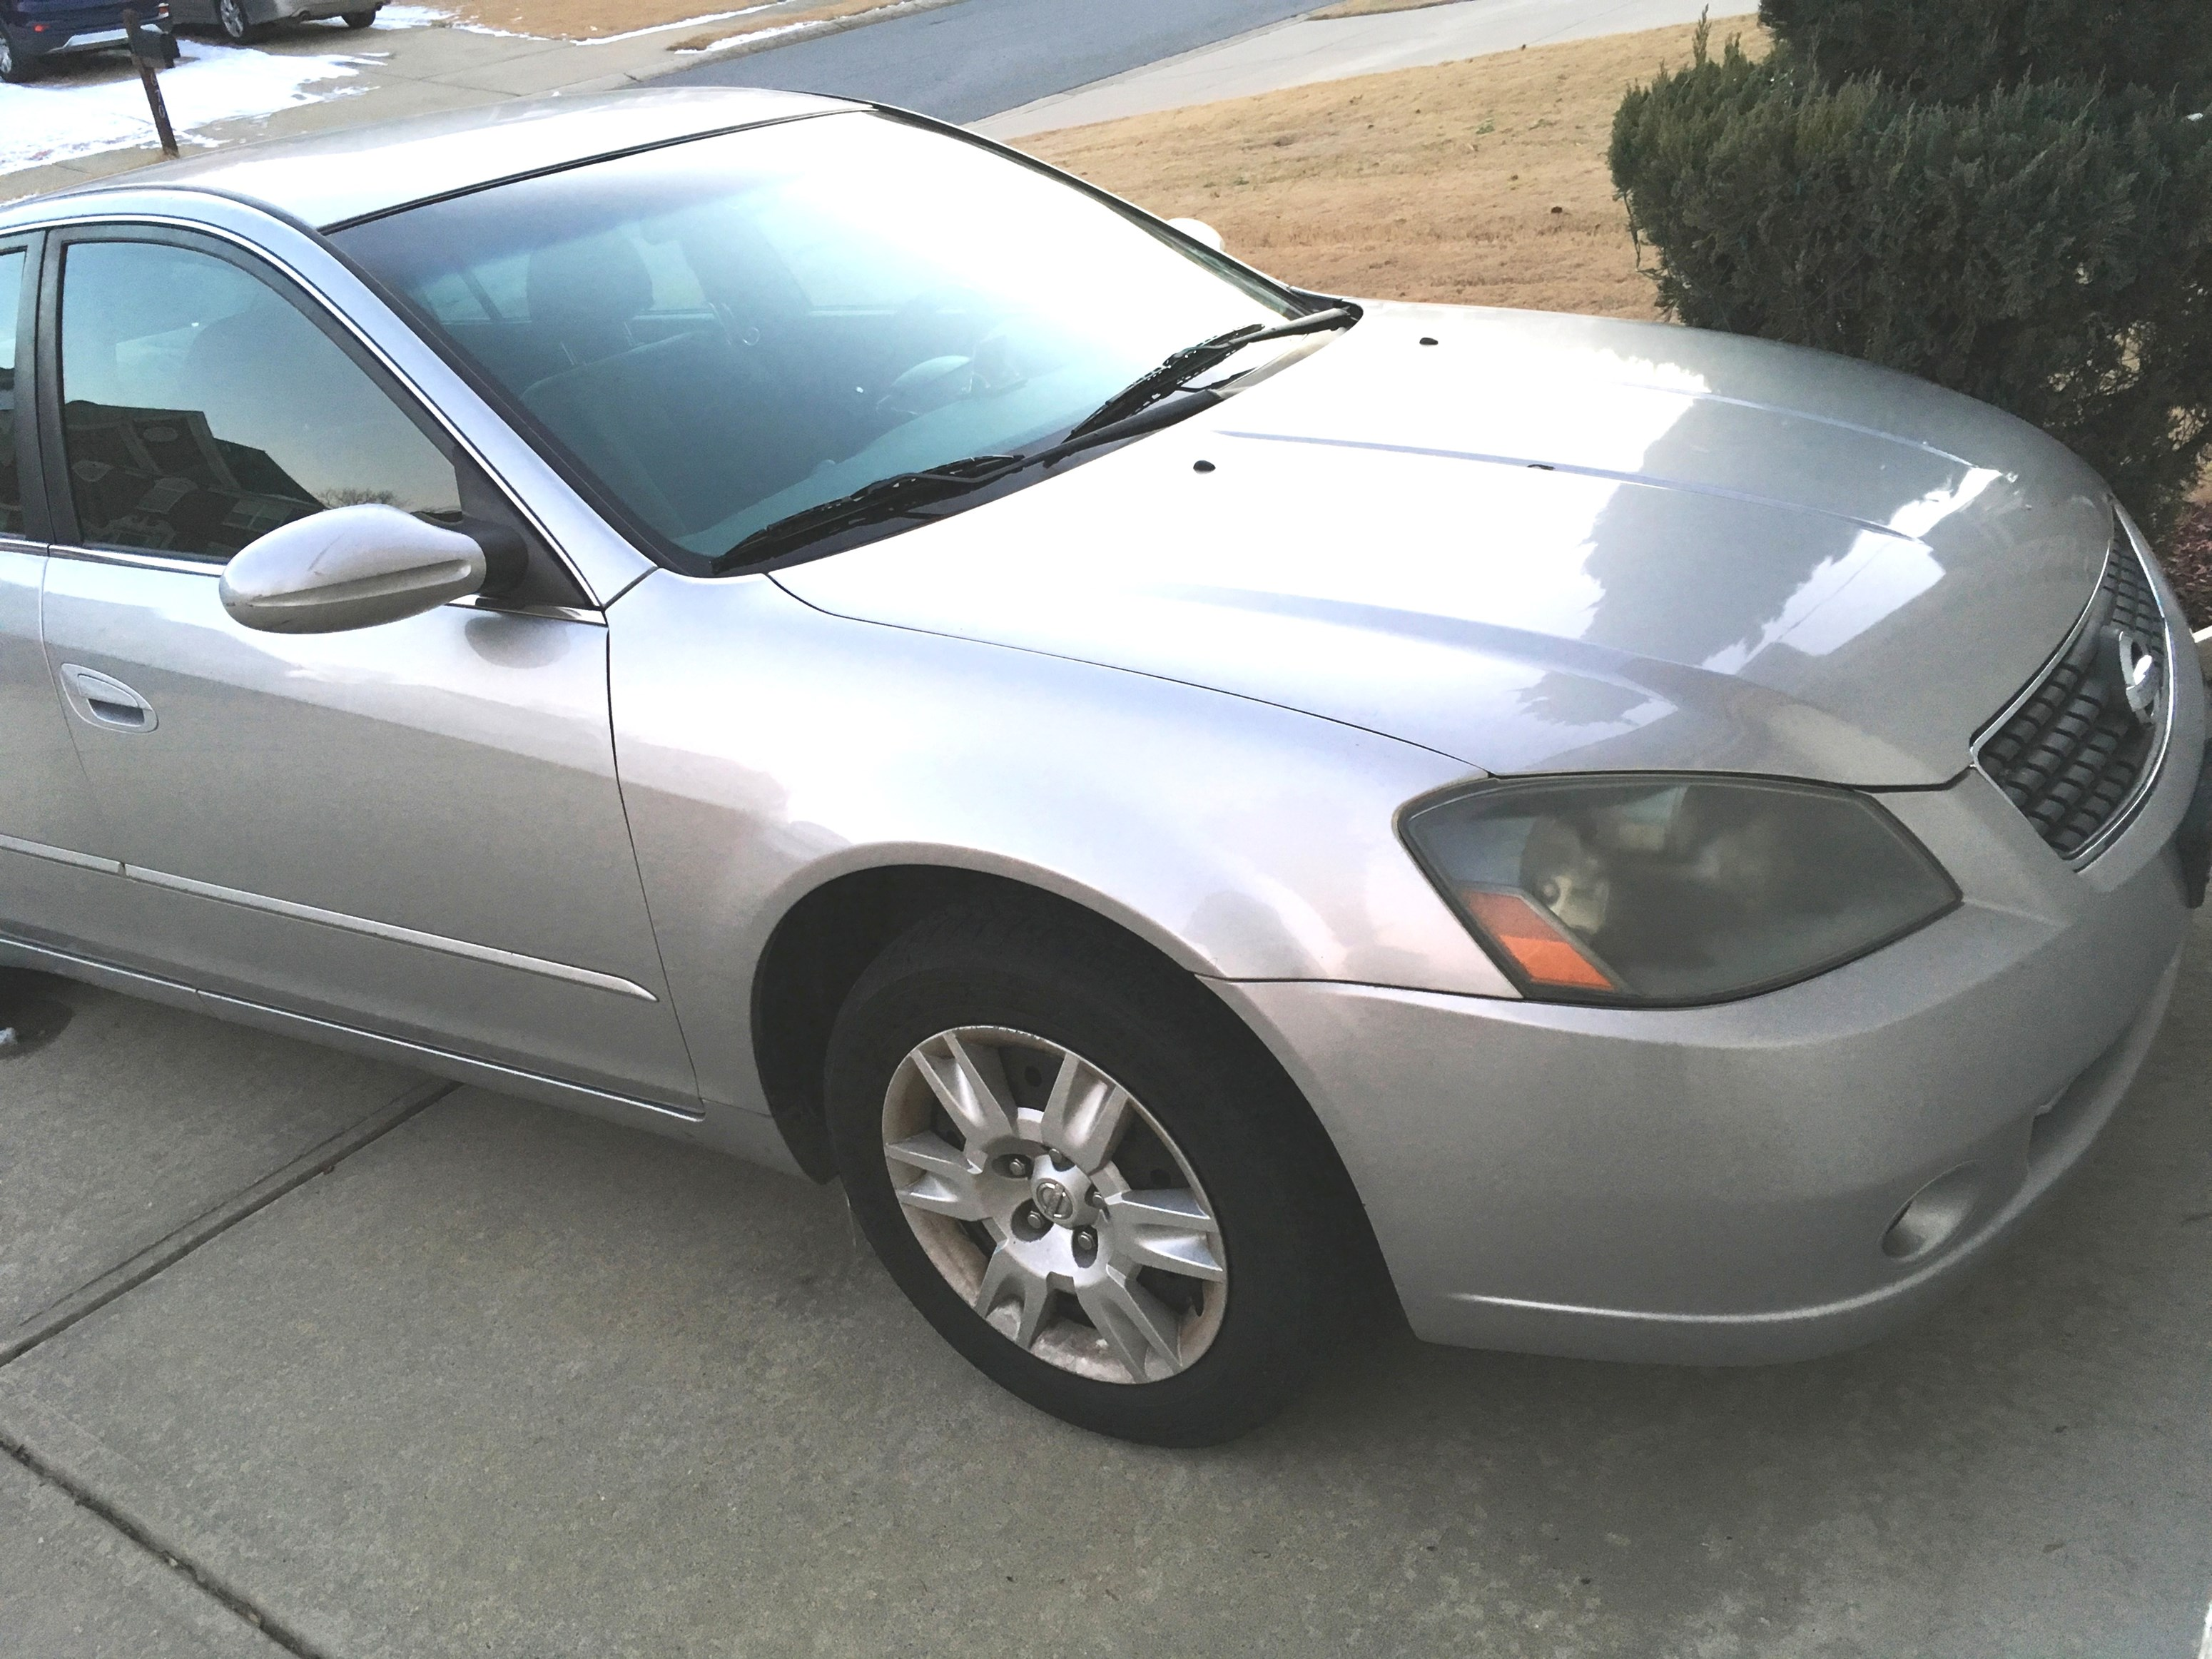 2005 Nissan Altima For Sale Used Nissan Altima Cars in Suwanee AD